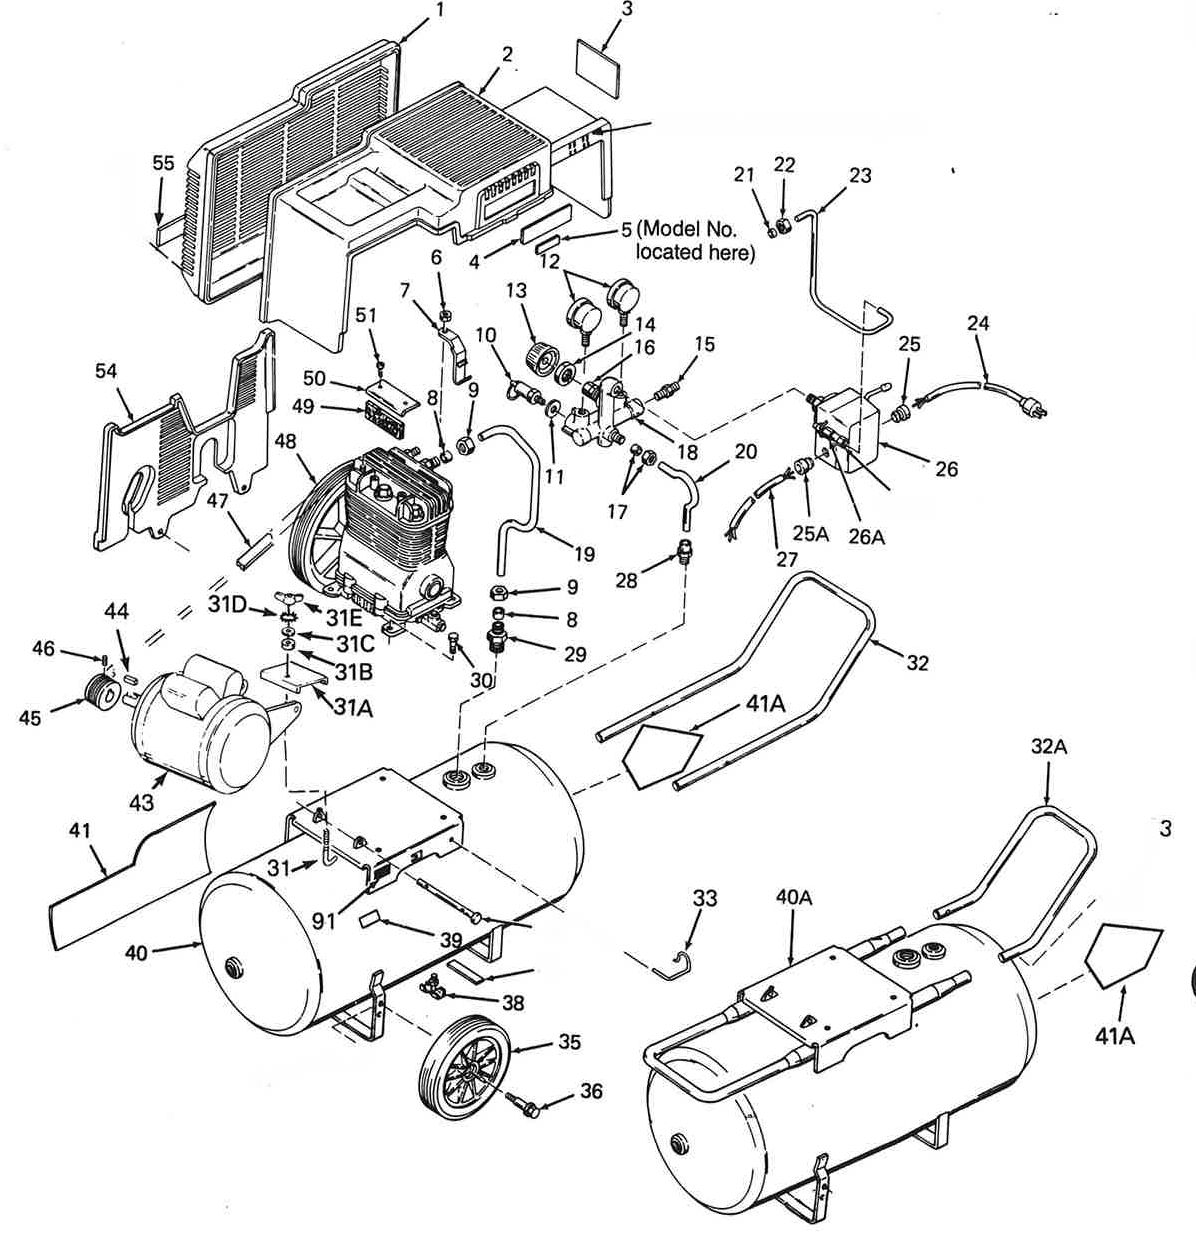 Husky 17 350 parts diagram wiring diagram